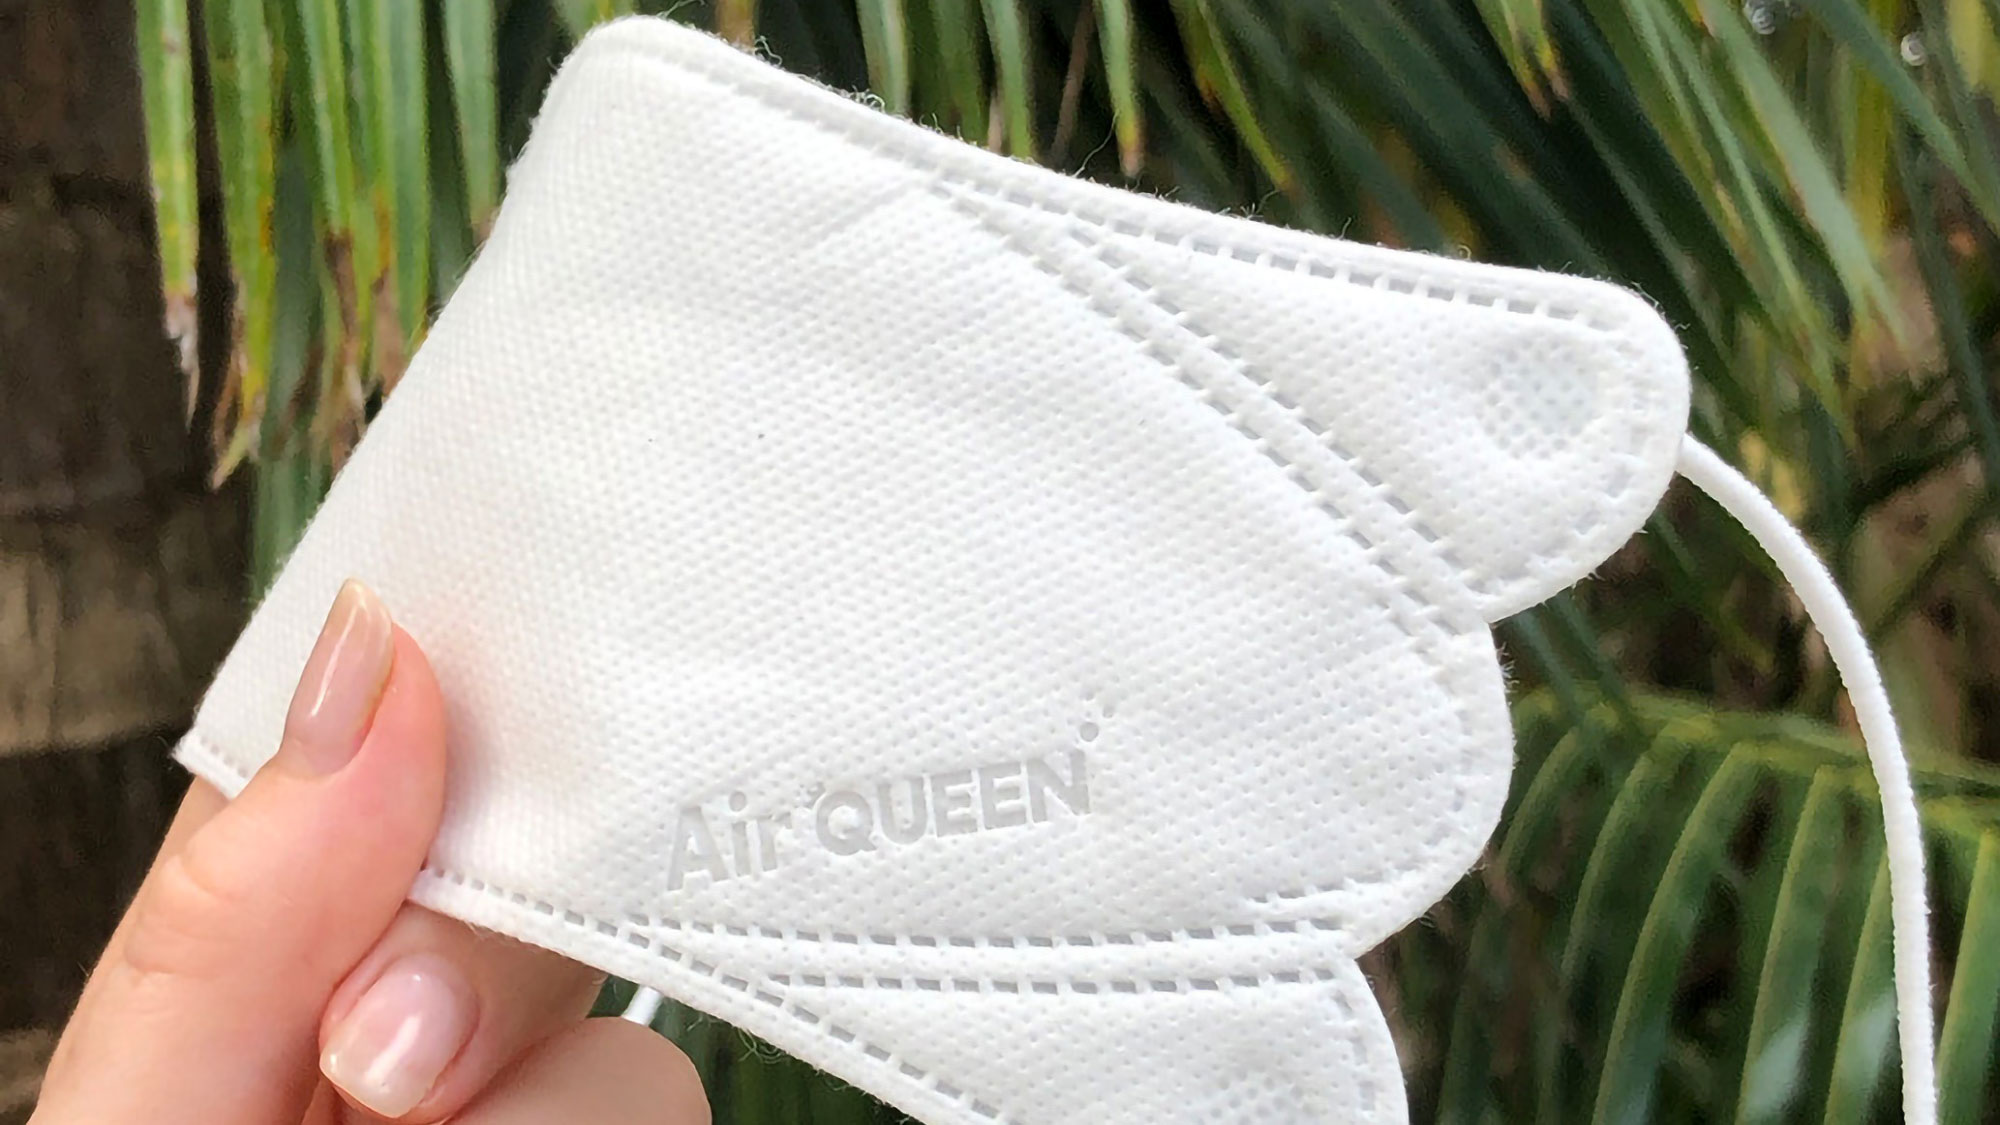 AirQueen Nanofiber Mask Now Available to the Public